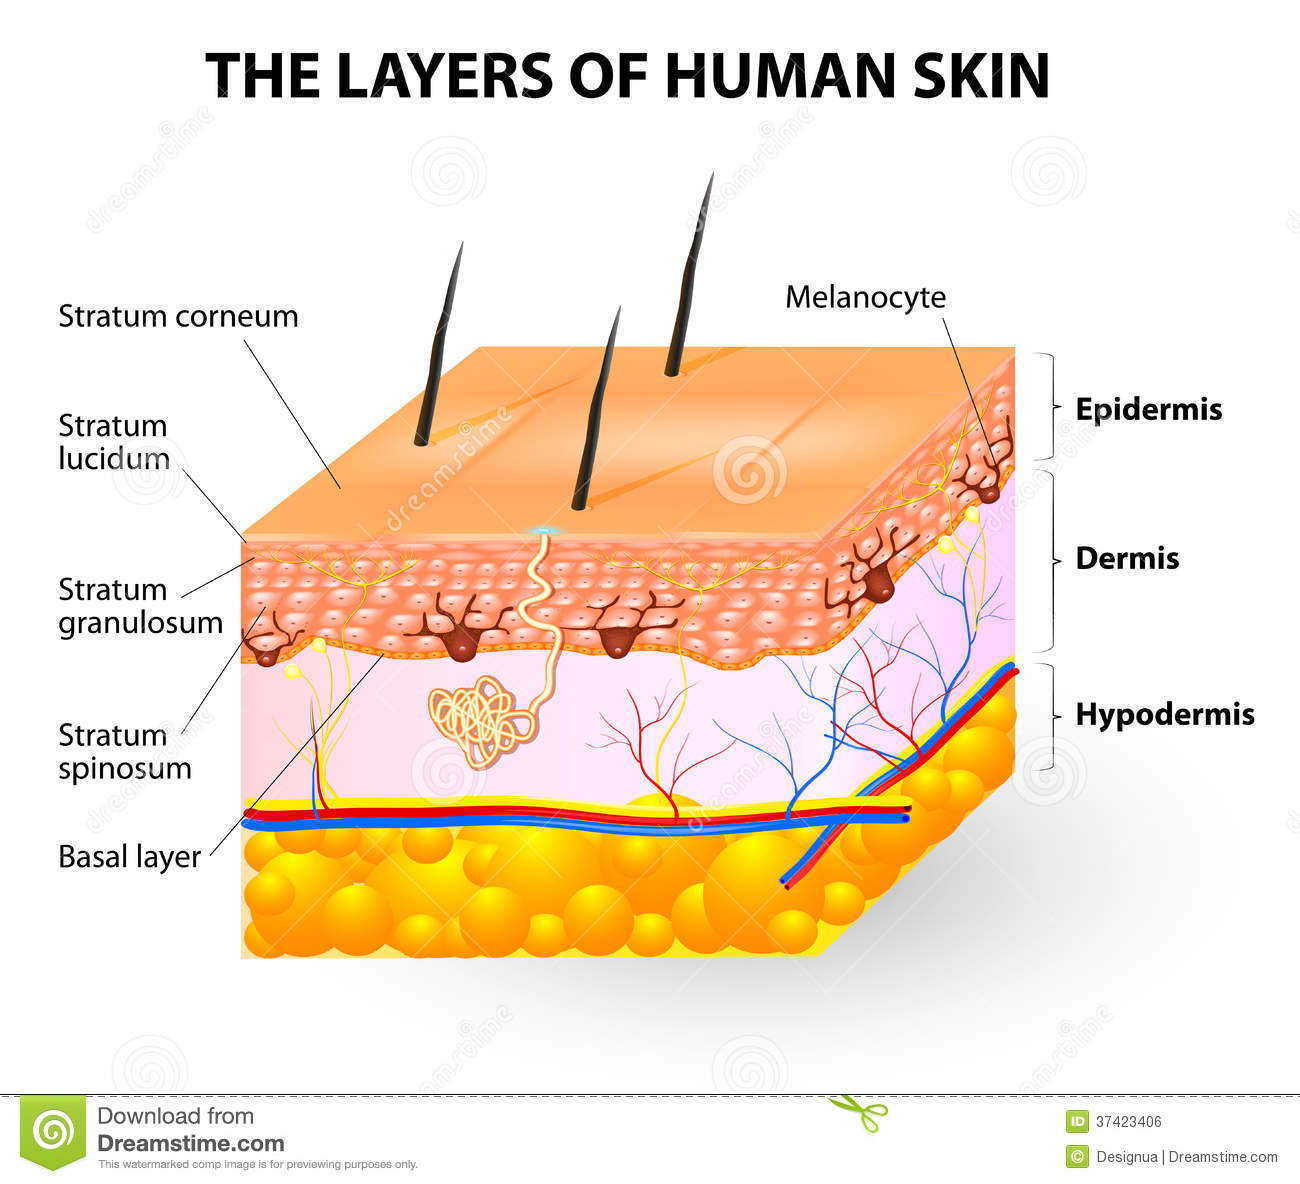 layers human skin melanocyte melanin epidermis melanocytes produce pigment which can then transfer to other 37423406